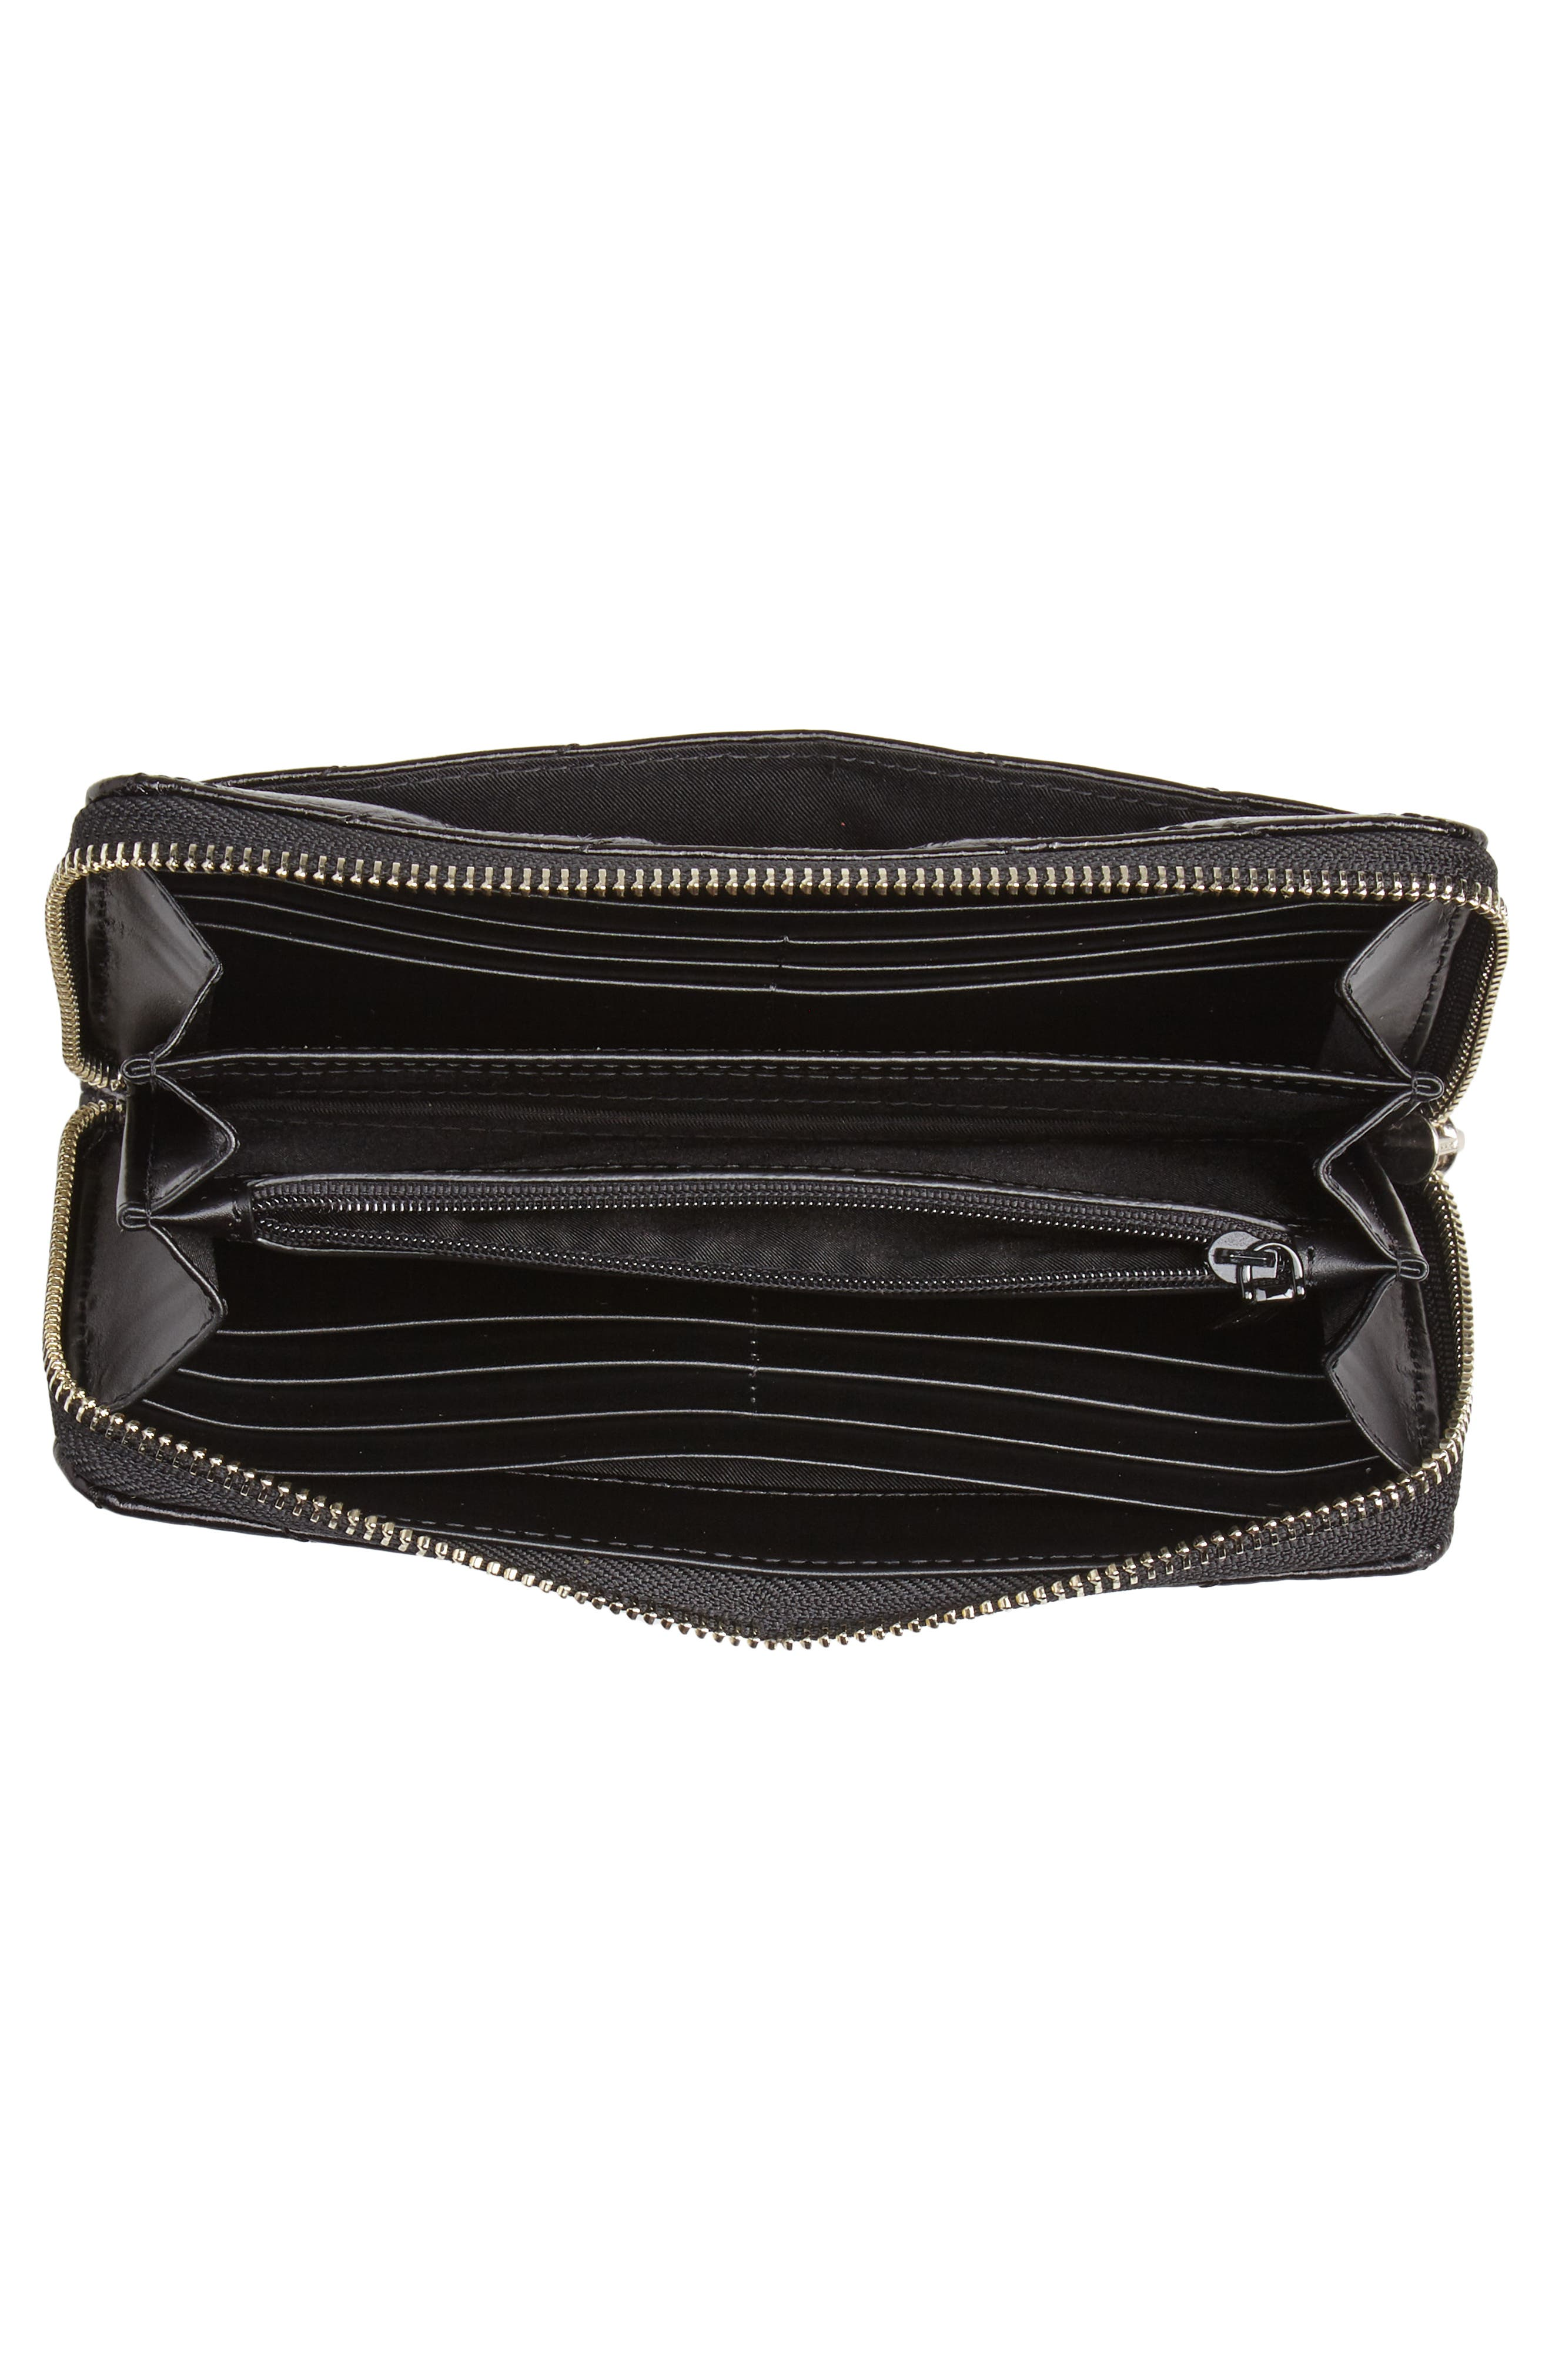 REBECCA MINKOFF, Quilted Wallet, Alternate thumbnail 4, color, BLACK